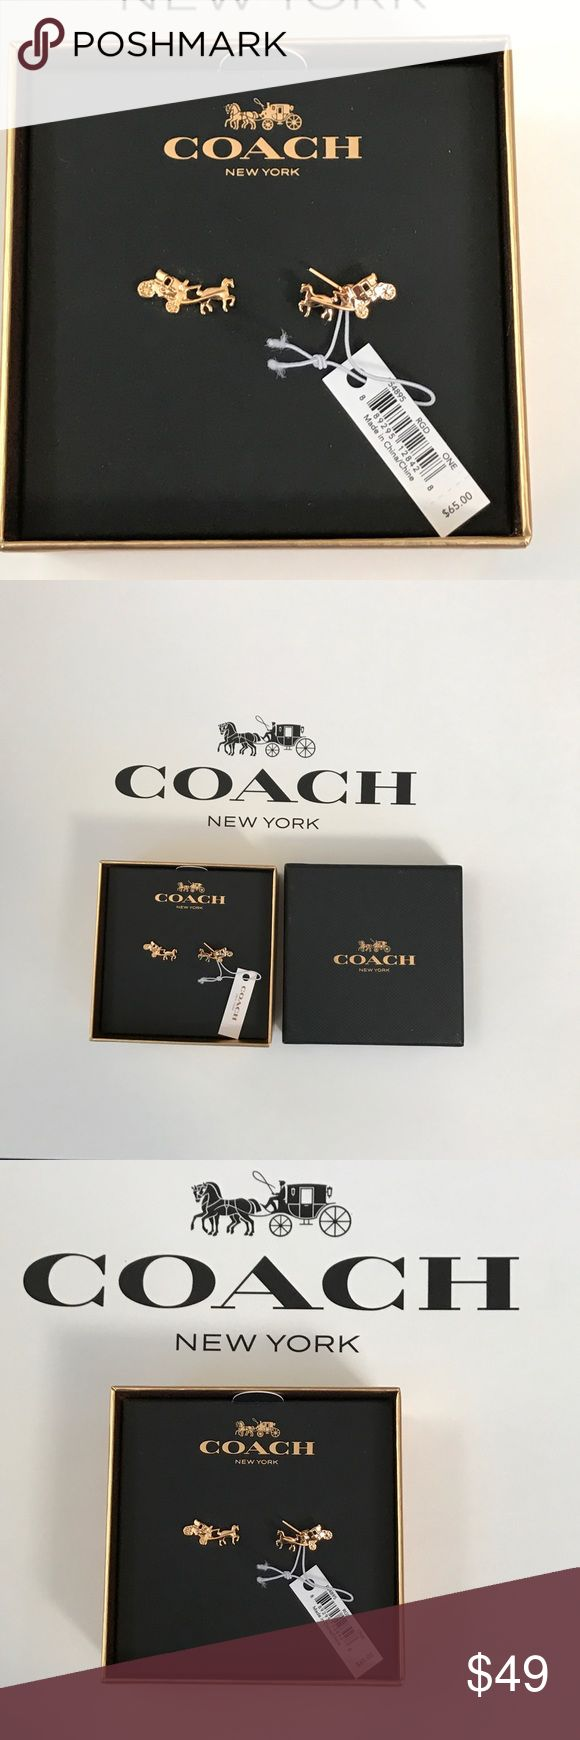 "Coach Horse & Carriage Women Small Stud Earrings NWT Authentic COACH Carriage Earrings F54895 in Rose Gold w/ Coach Gift Box.  Style# F54895.  MSRP $65.  100% Authentic Brand new with tag Coach's signature horse and carriage logo with hang tag Rose Gold Approximately 0.4""H x 0.75""W Includes Coach gift box & jewelry care card Coach Jewelry Earrings"